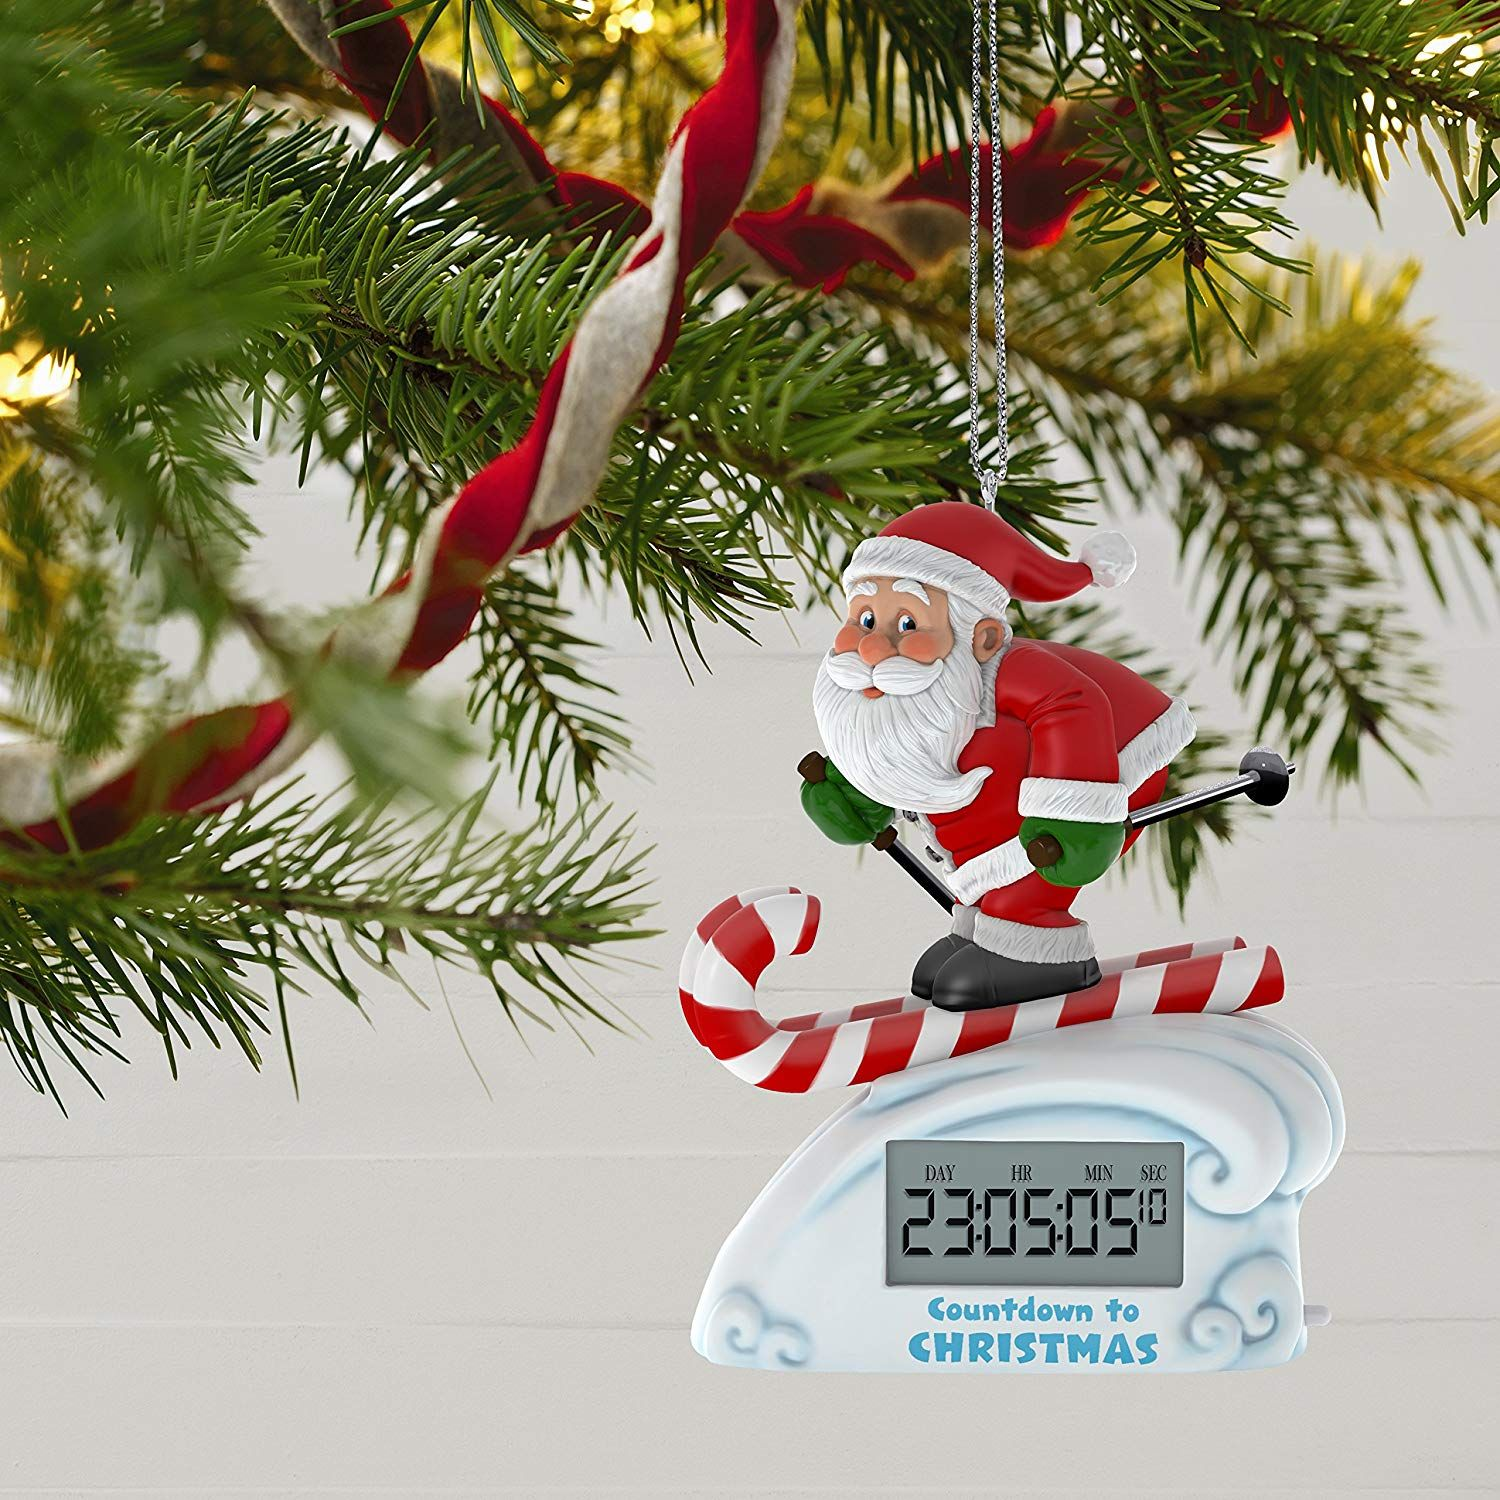 Countdown To Christmas Clock.Hallmark Santa Skiing Countdown To Christmas Clock Ornament